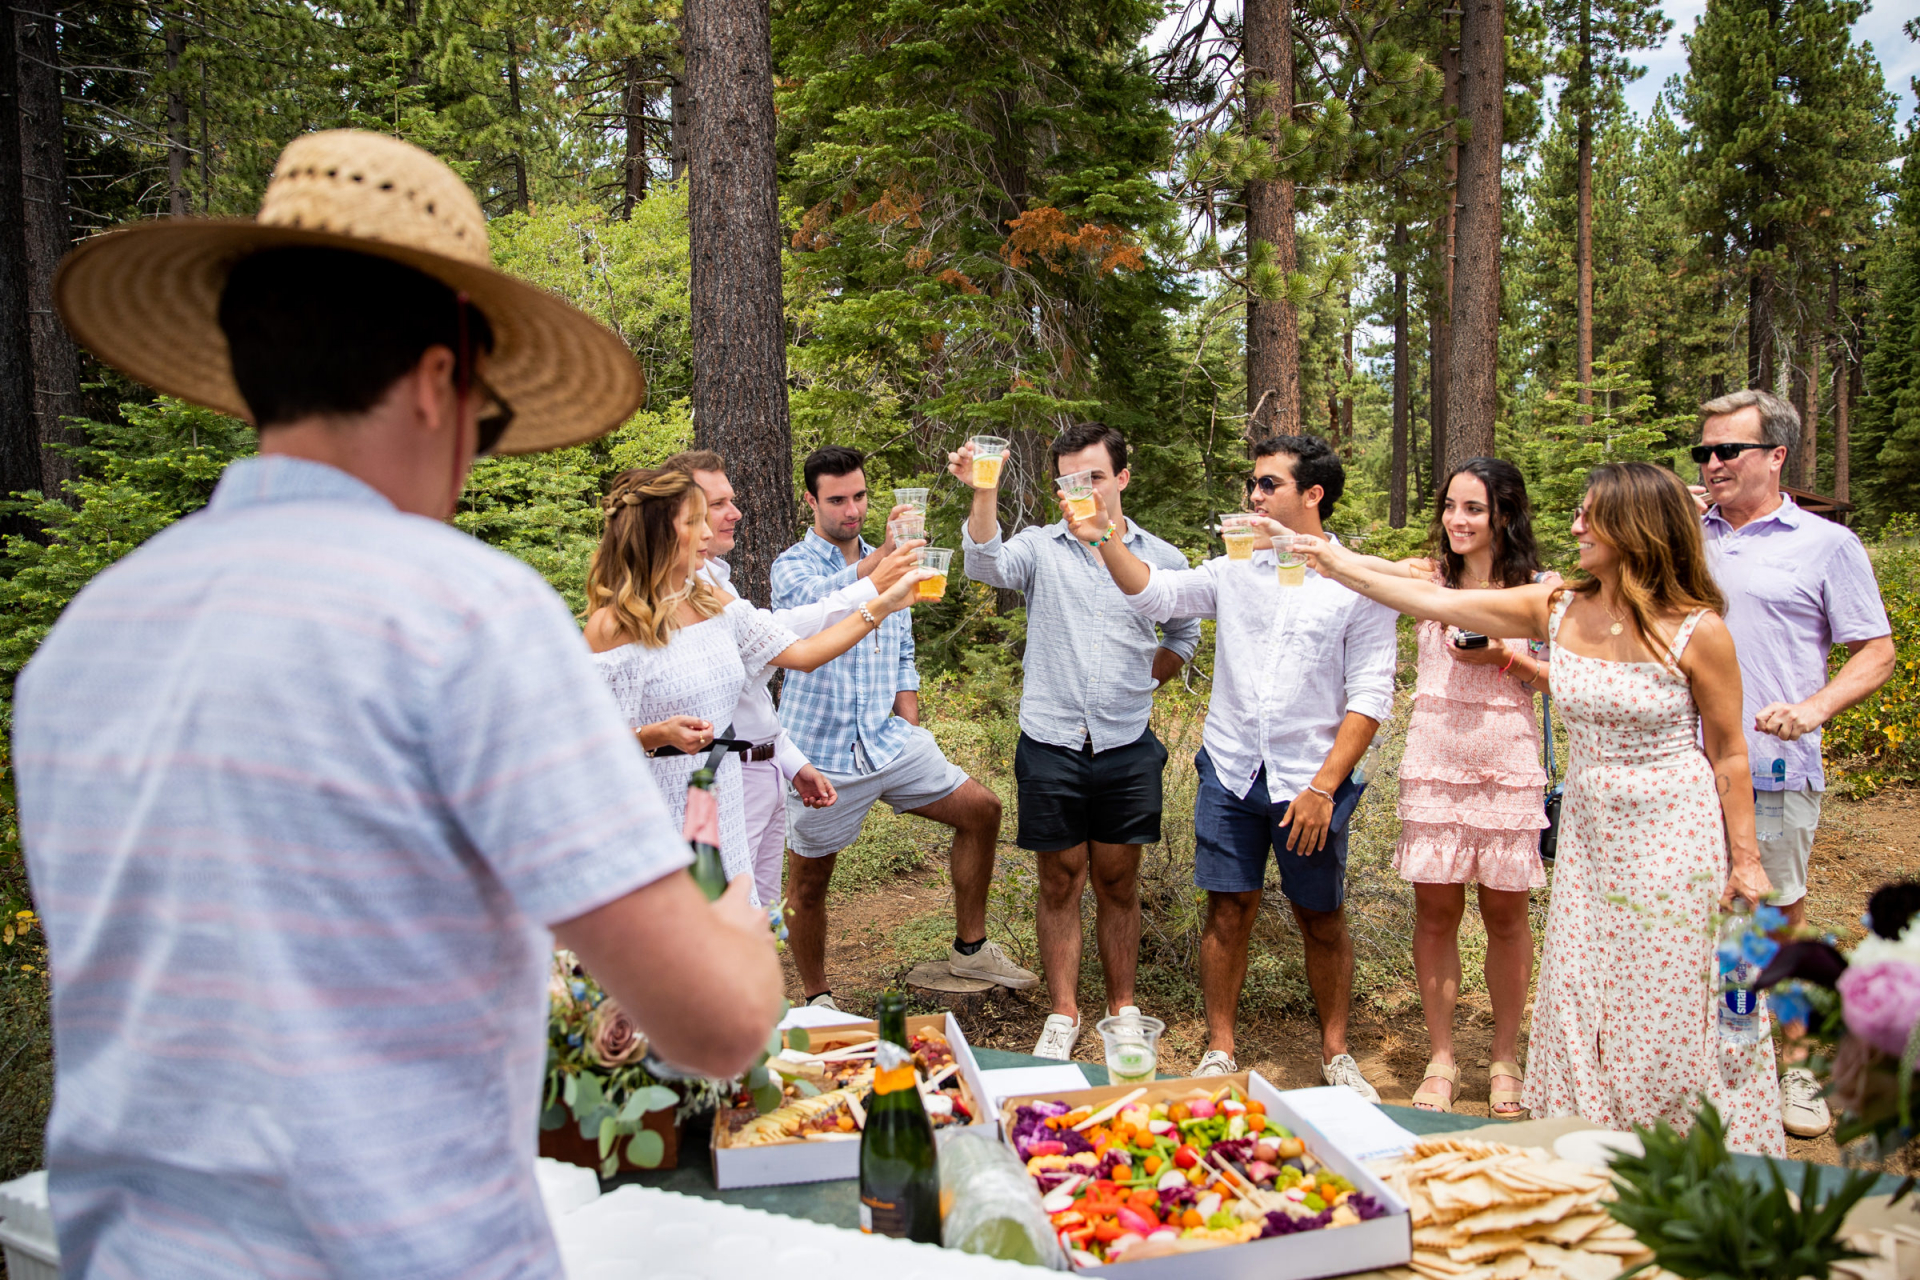 Lake Tahoe, California - Skylandia Park Outdoor Wedding Pic   After the ceremony the bottle of champagne has been popped and poured